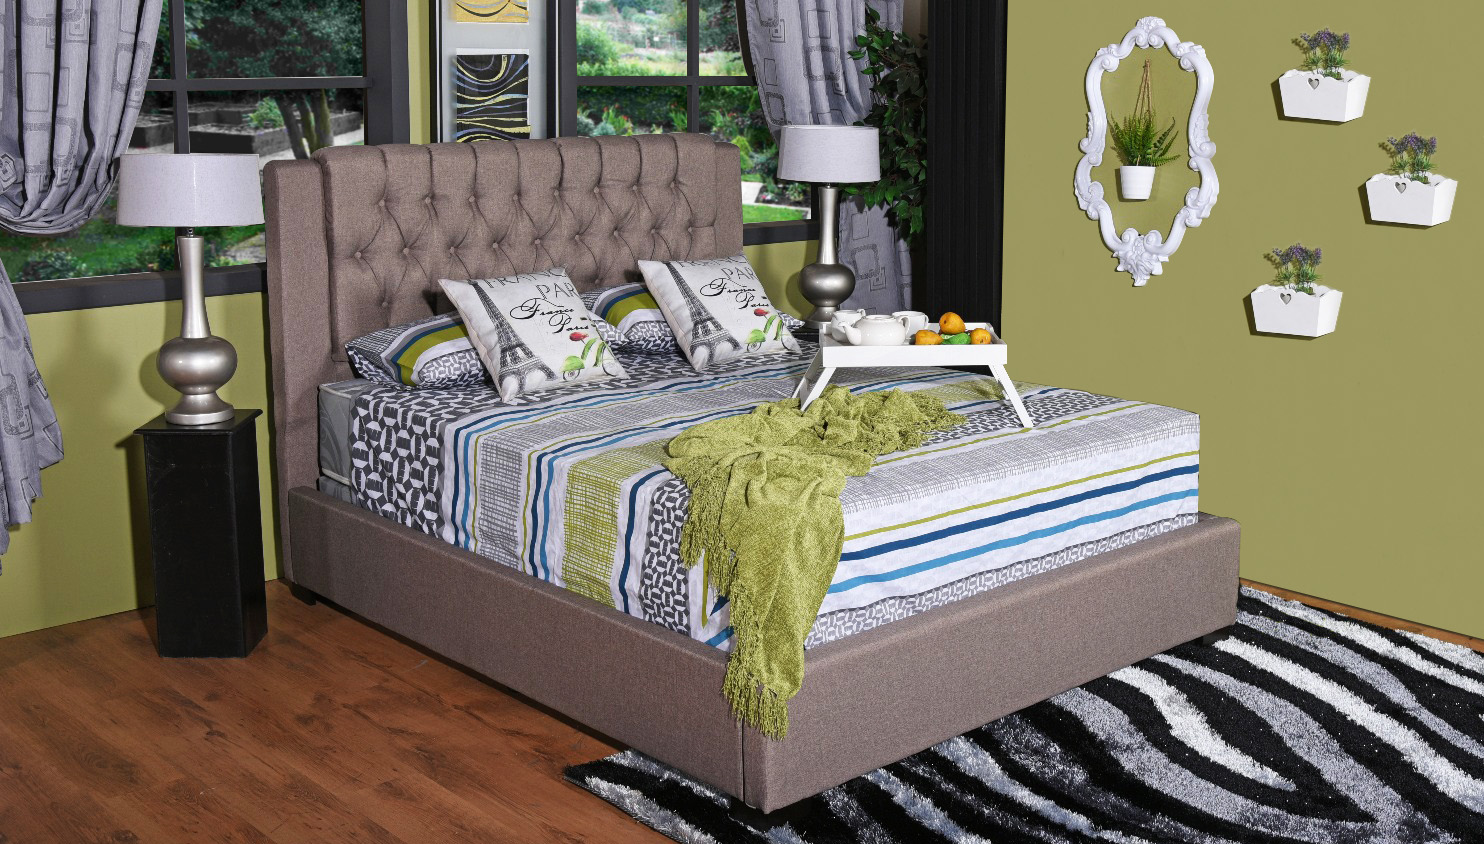 Messidy bedroom suite discount decor cheap mattresses for Bedroom suites for sale cheap